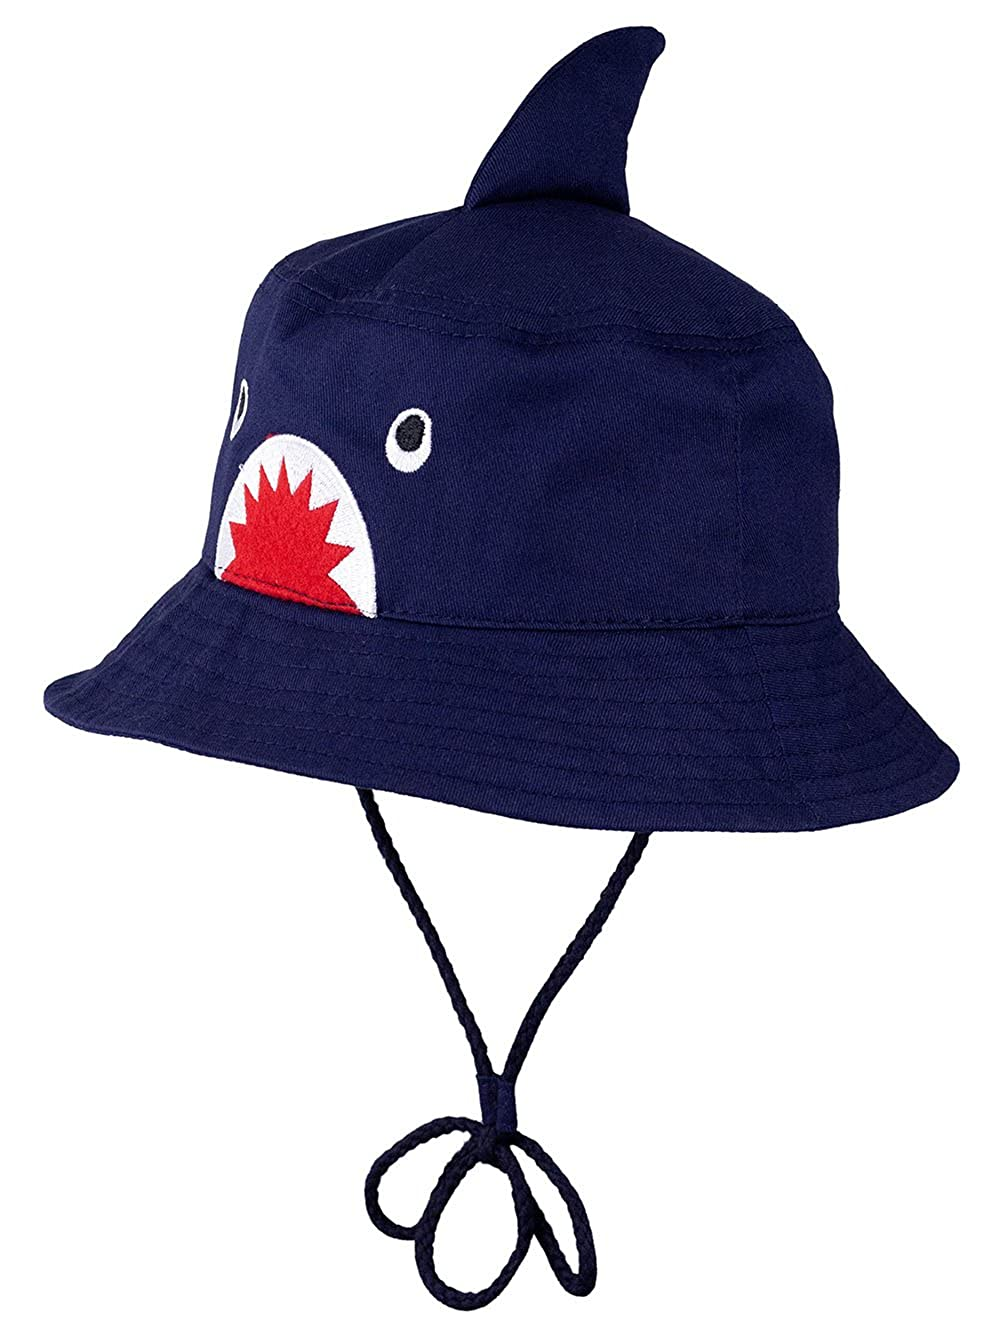 45b1f2383 Sun Hat for Baby Boy - Toddler Bucket Hat Summer Protection with Chin Strap